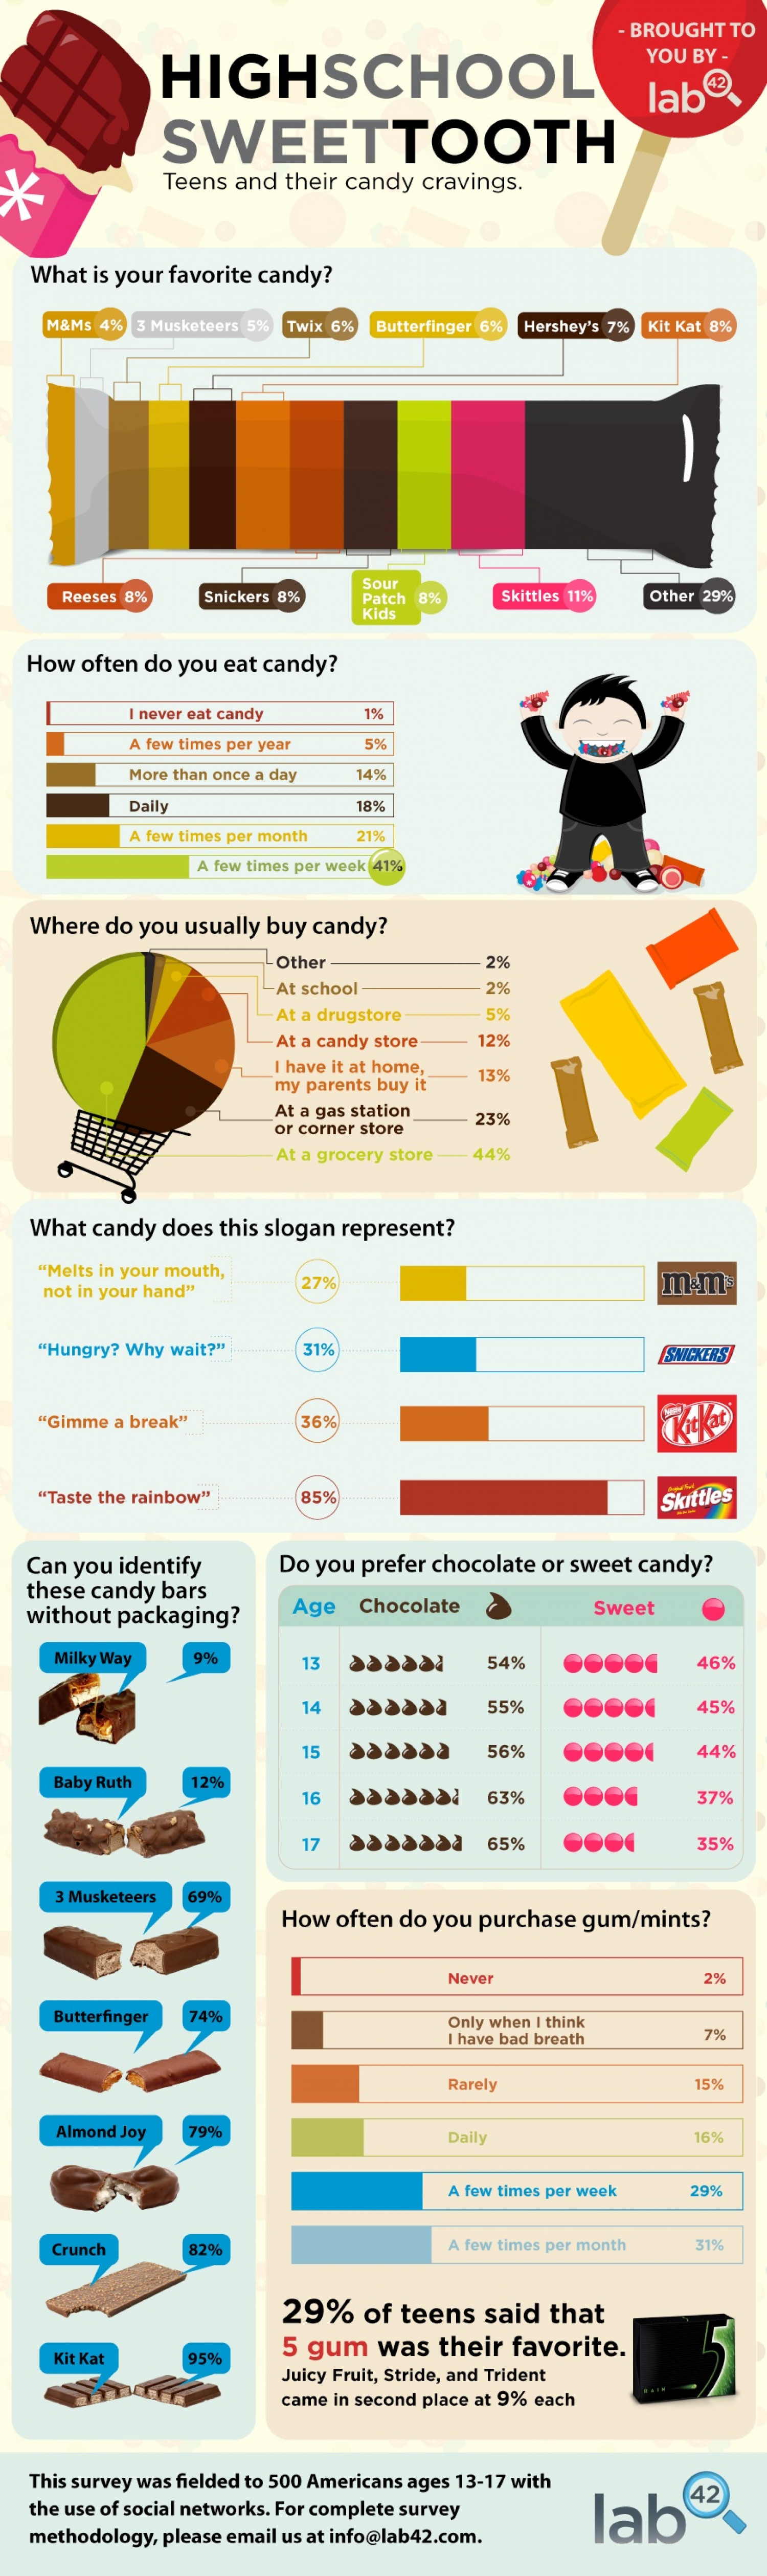 High School Sweet Tooth Infographic